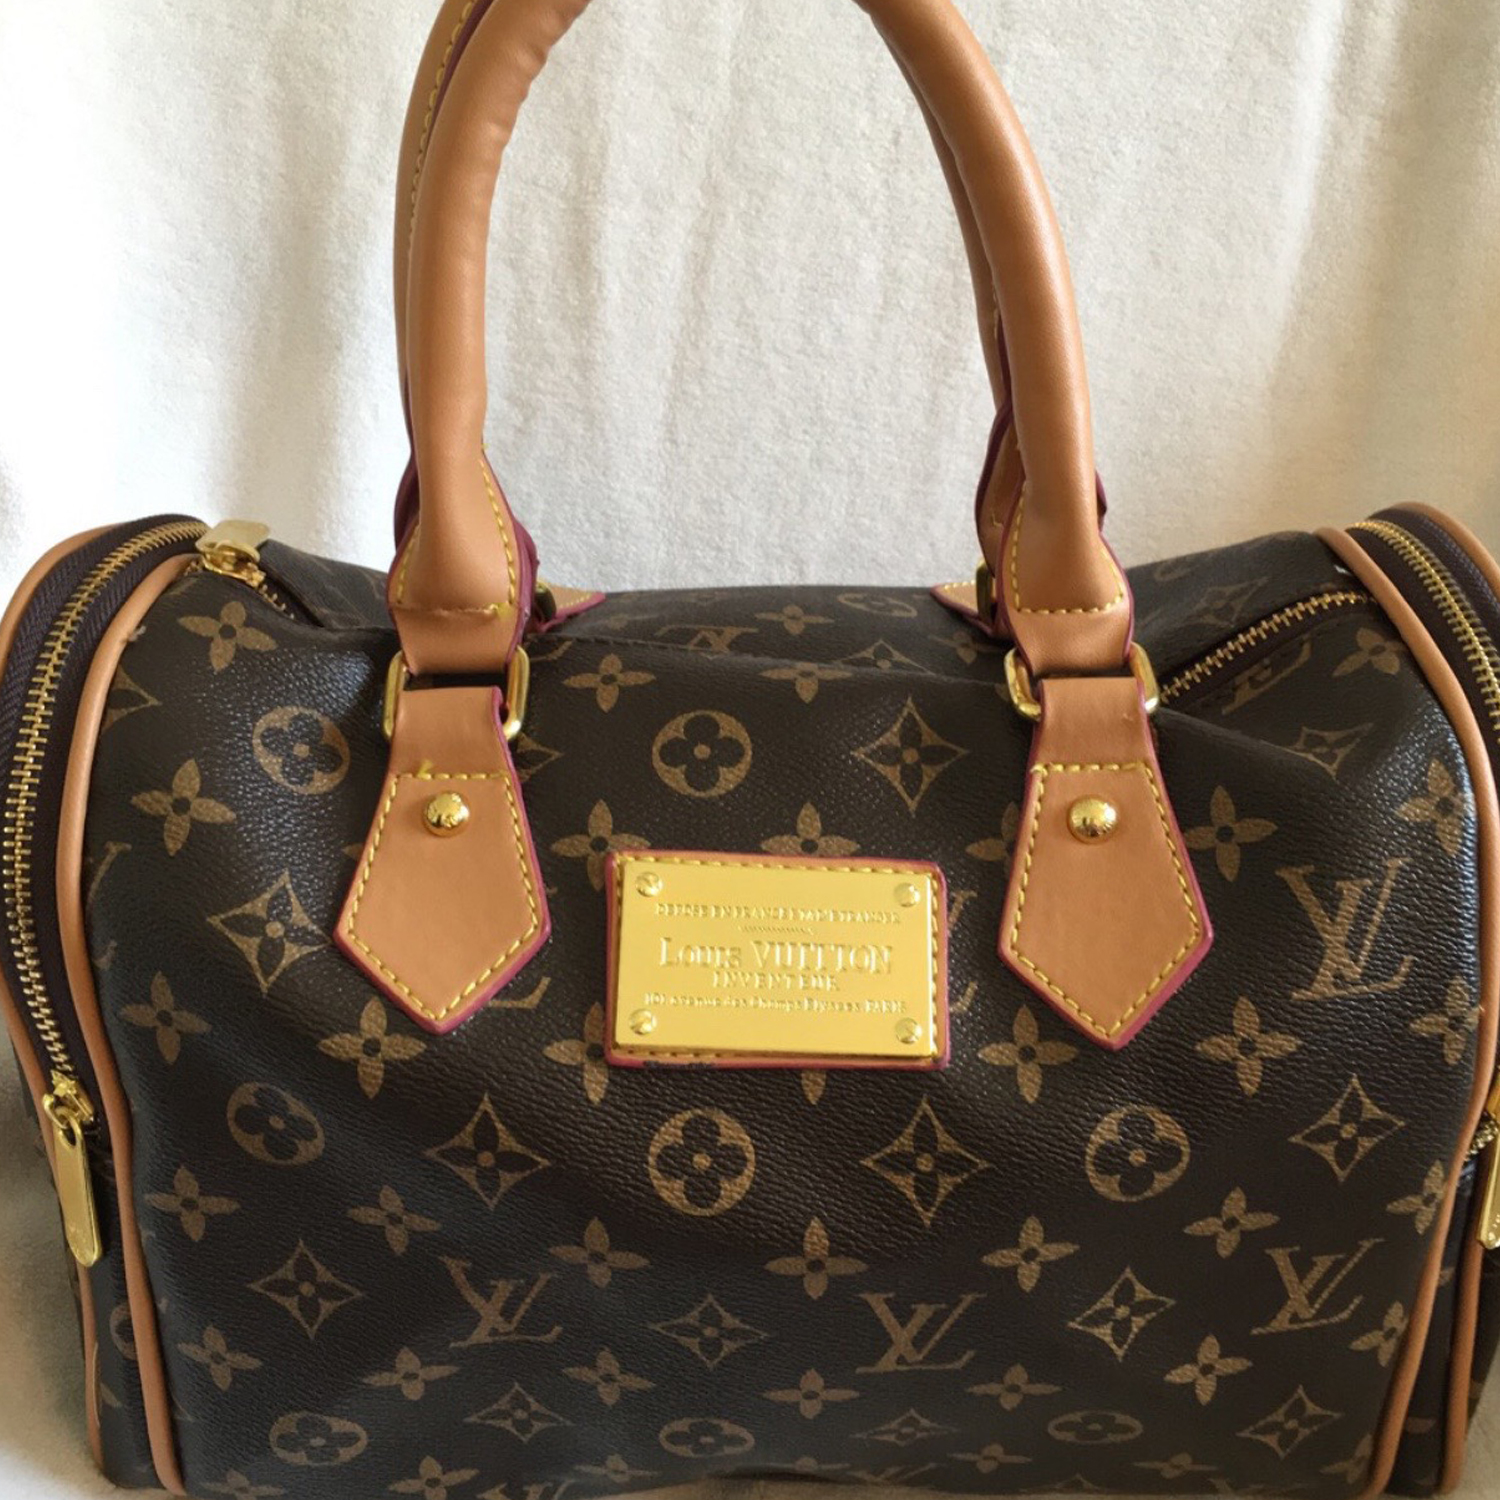 Used Louis Vuitton Handbags Authentic Hardware Replica Sloppy Craftsmanship On Plaque